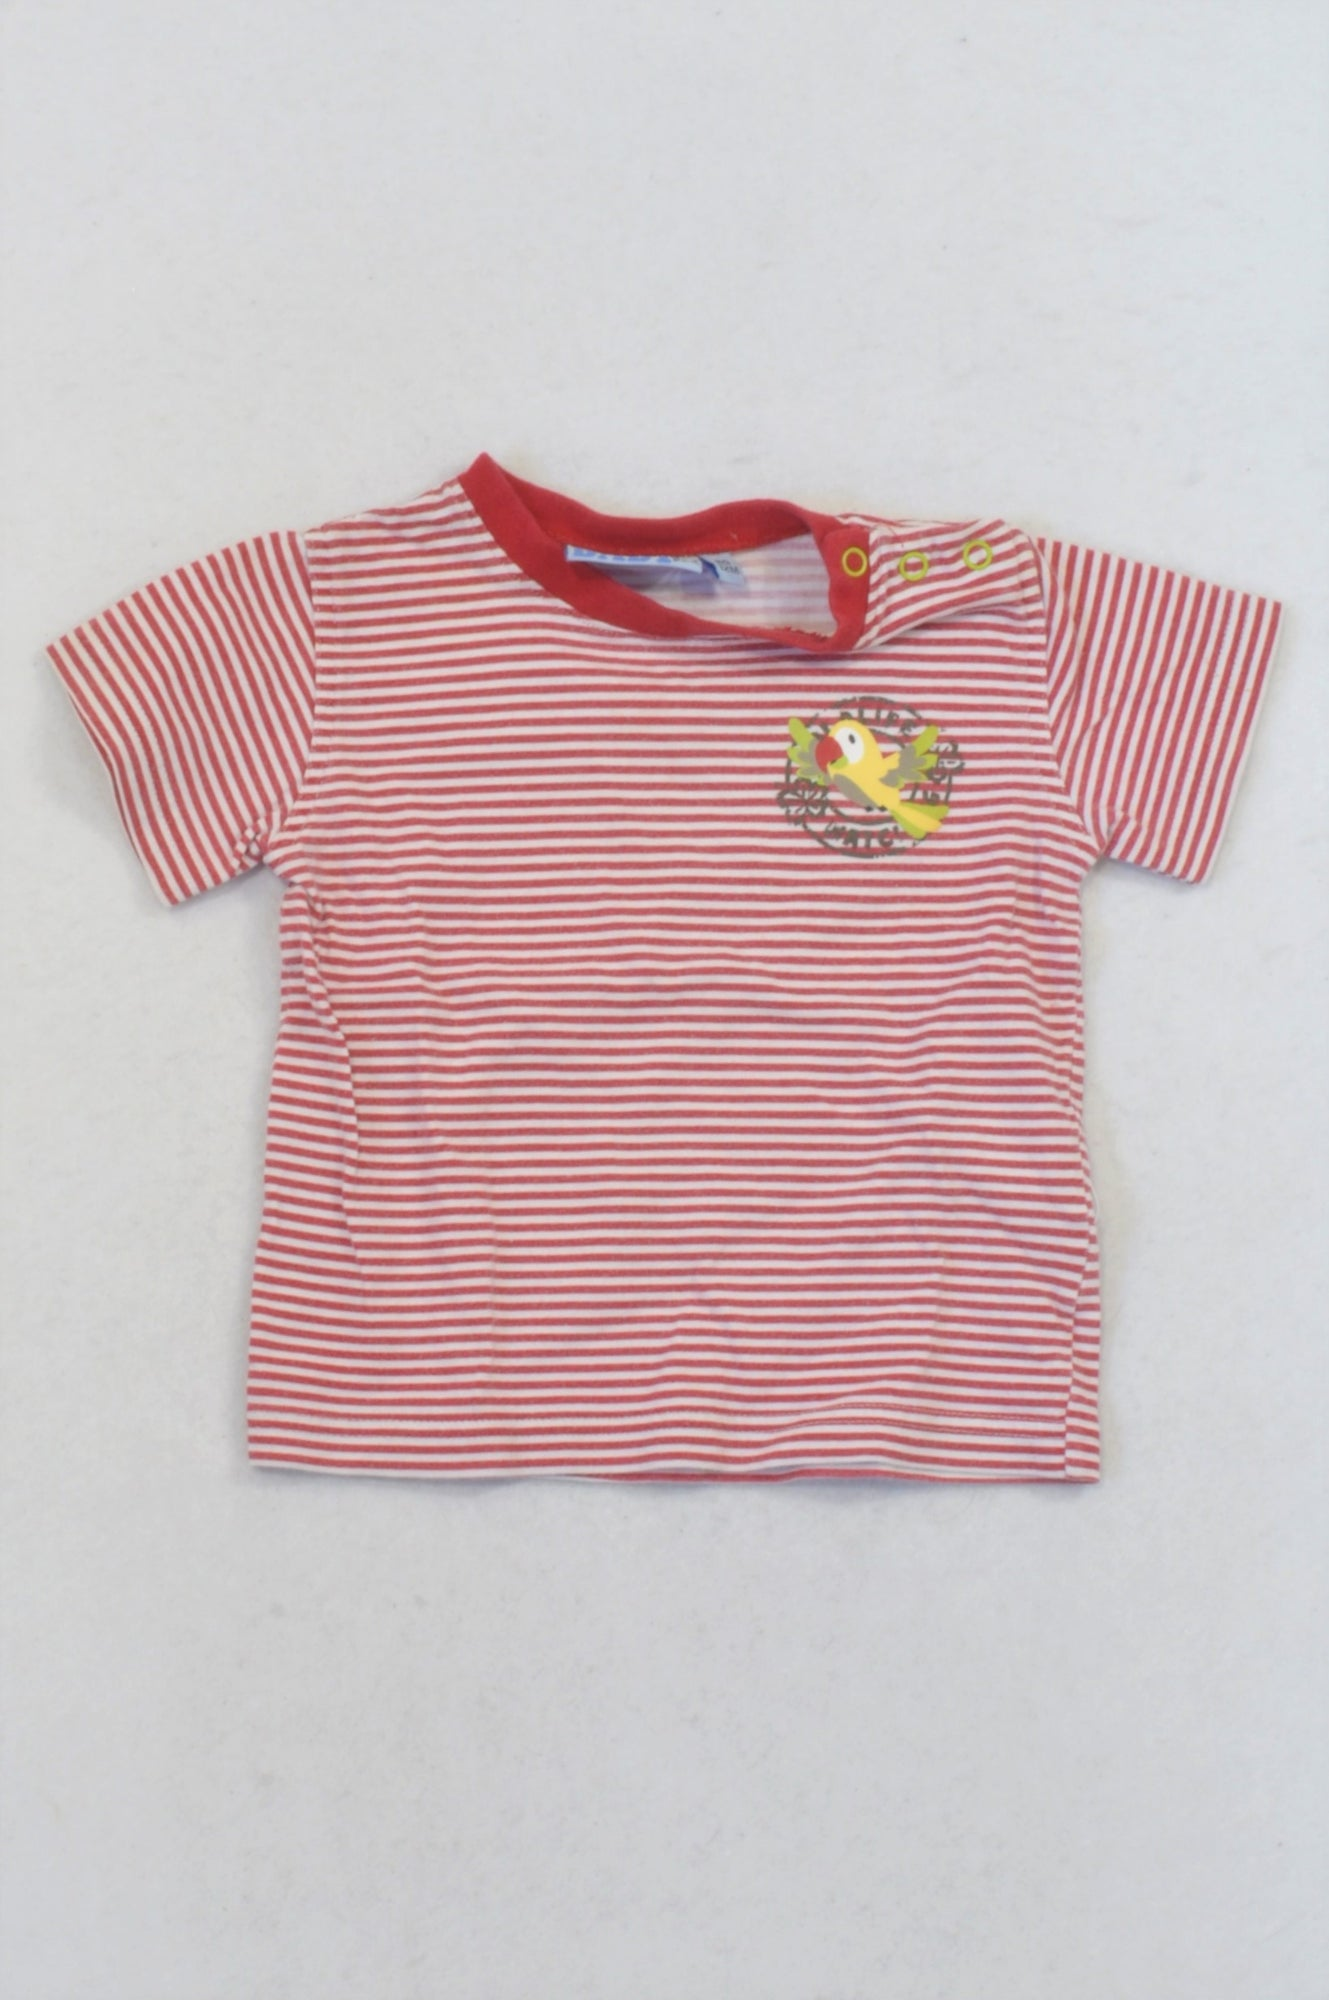 Red Thin Stripe Parrot T-shirt Boys 6-12 months